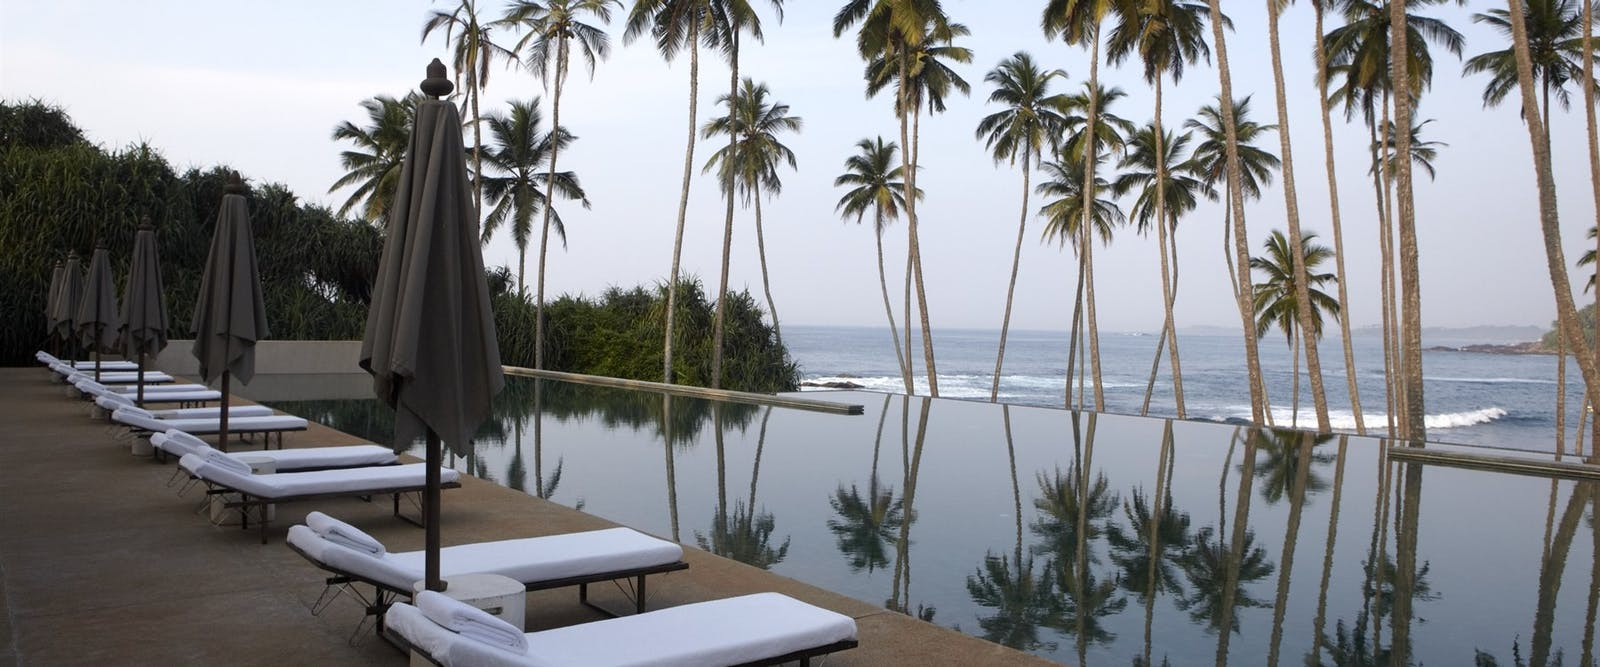 Swimming Pool with palm trees at Amanwella, Sri Lanka